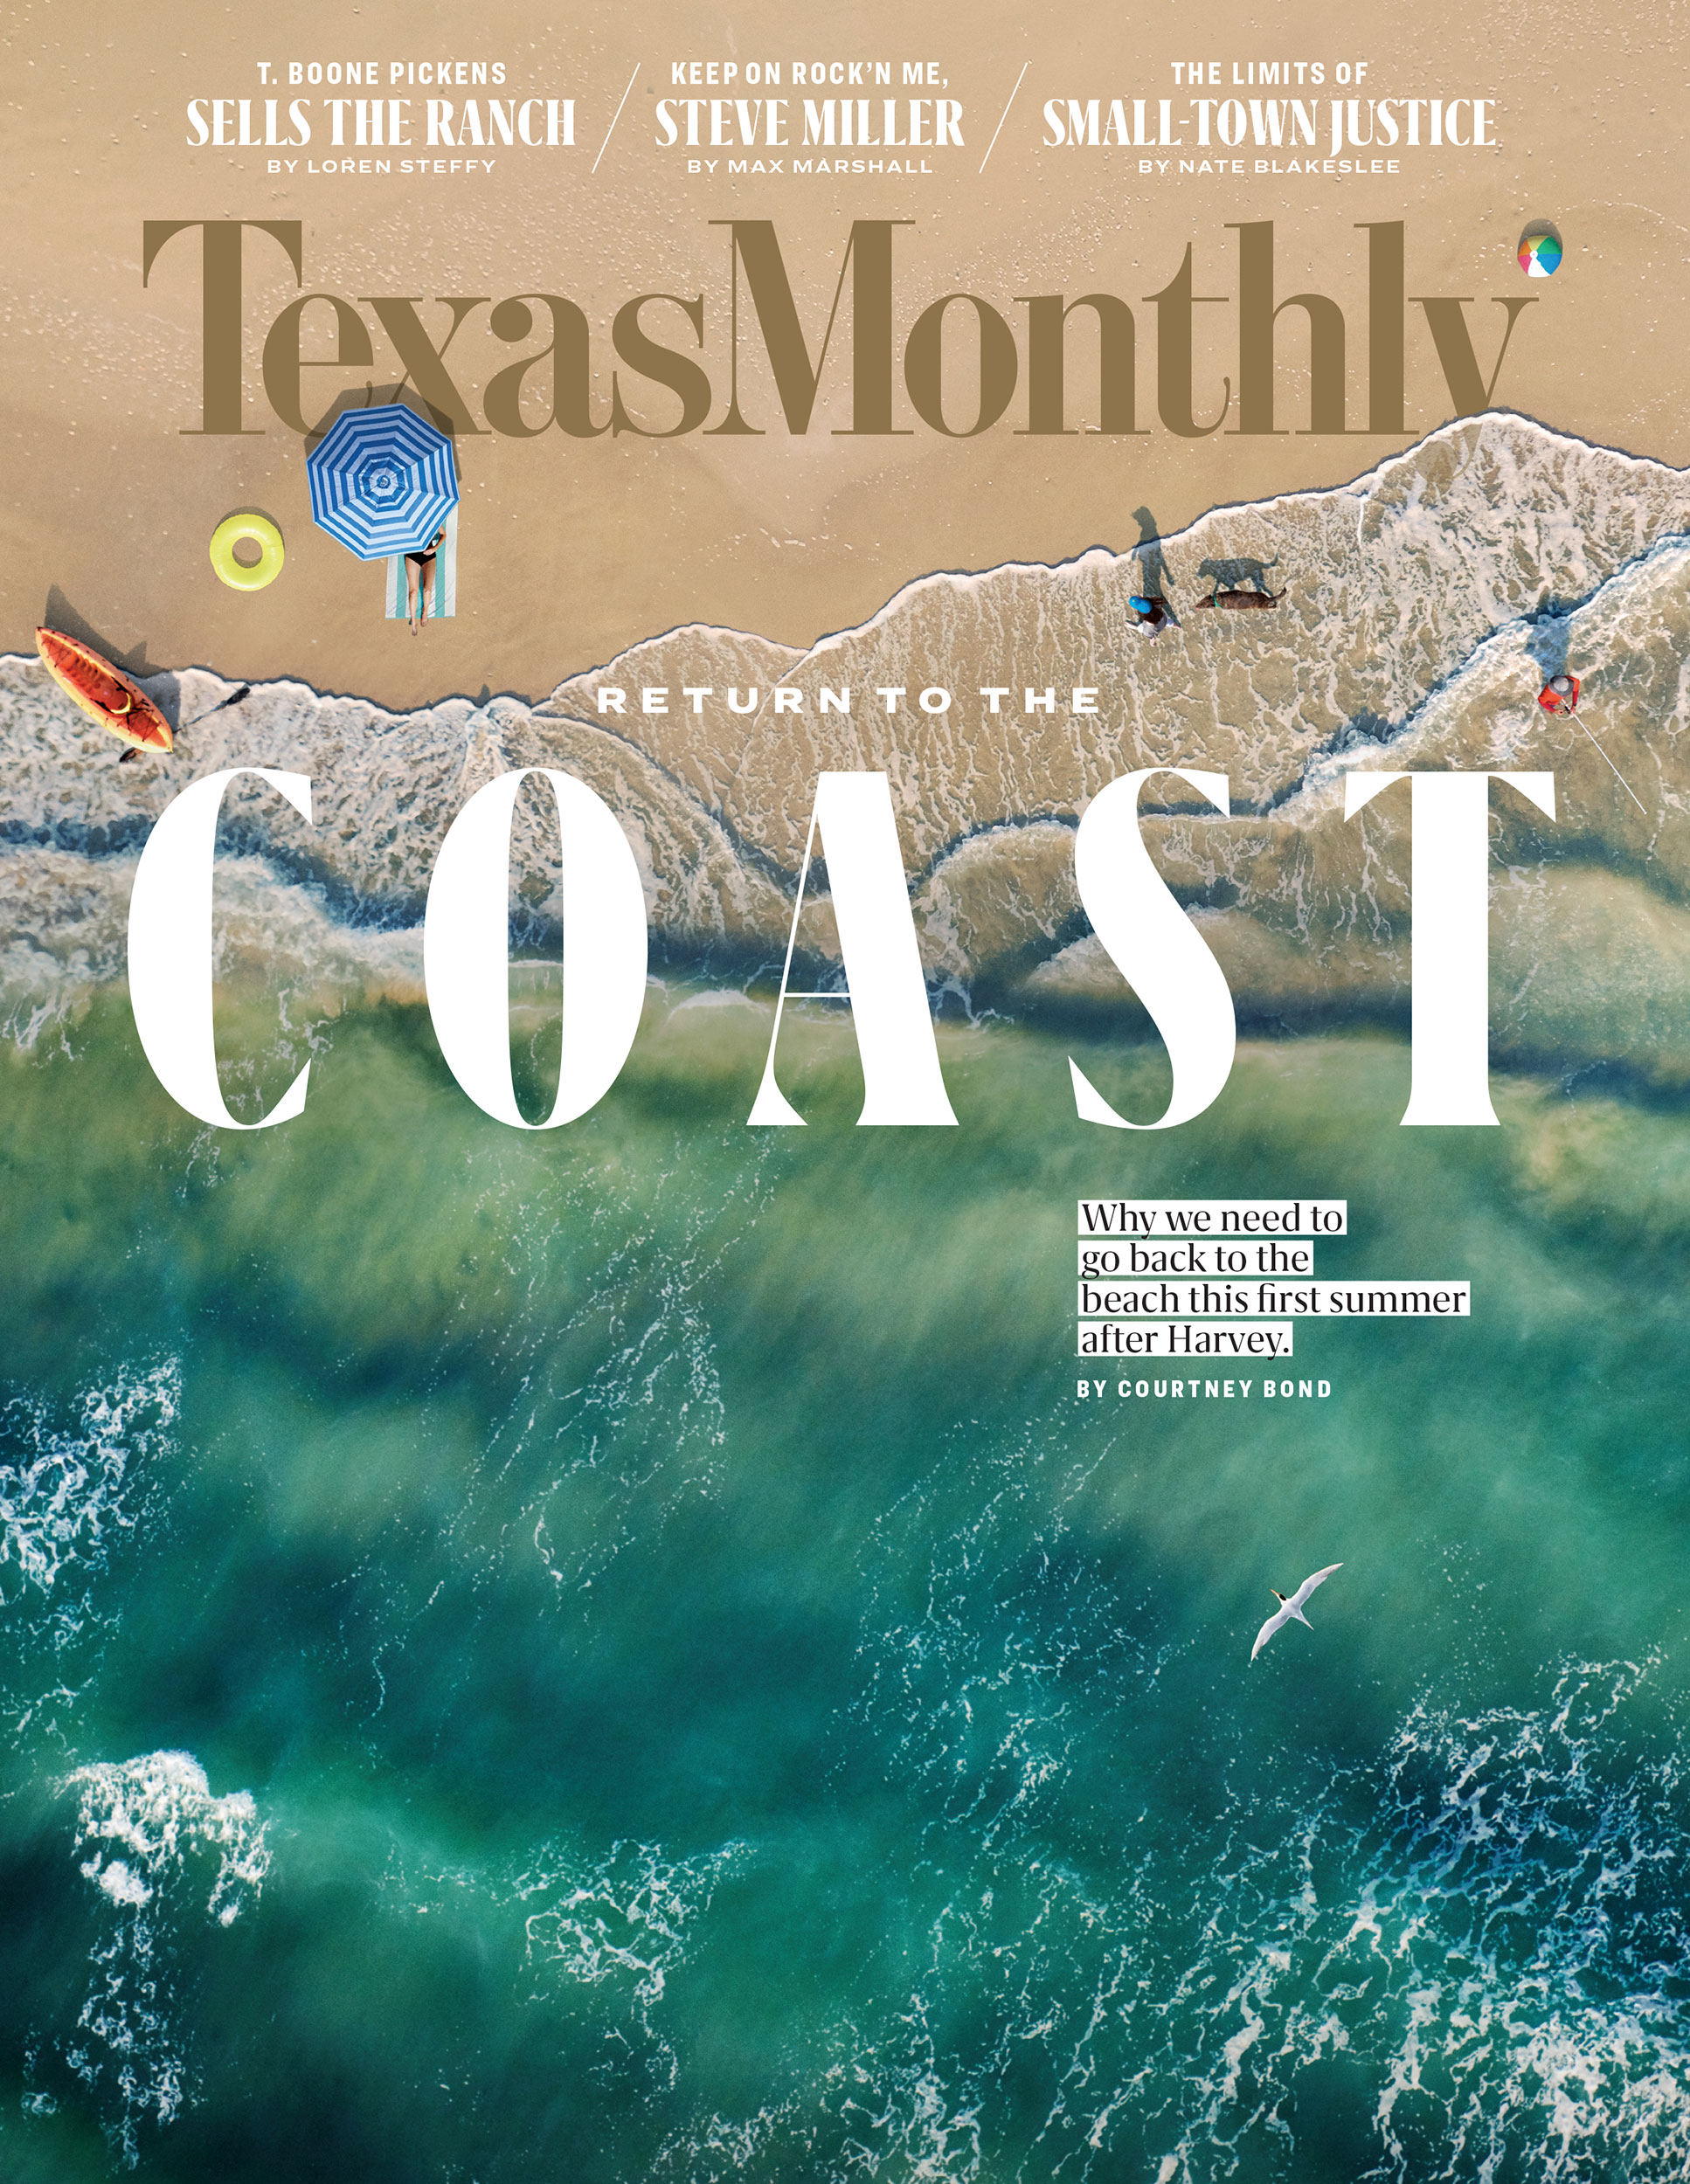 TexasMonthly_NickSimonite_0618_COVER